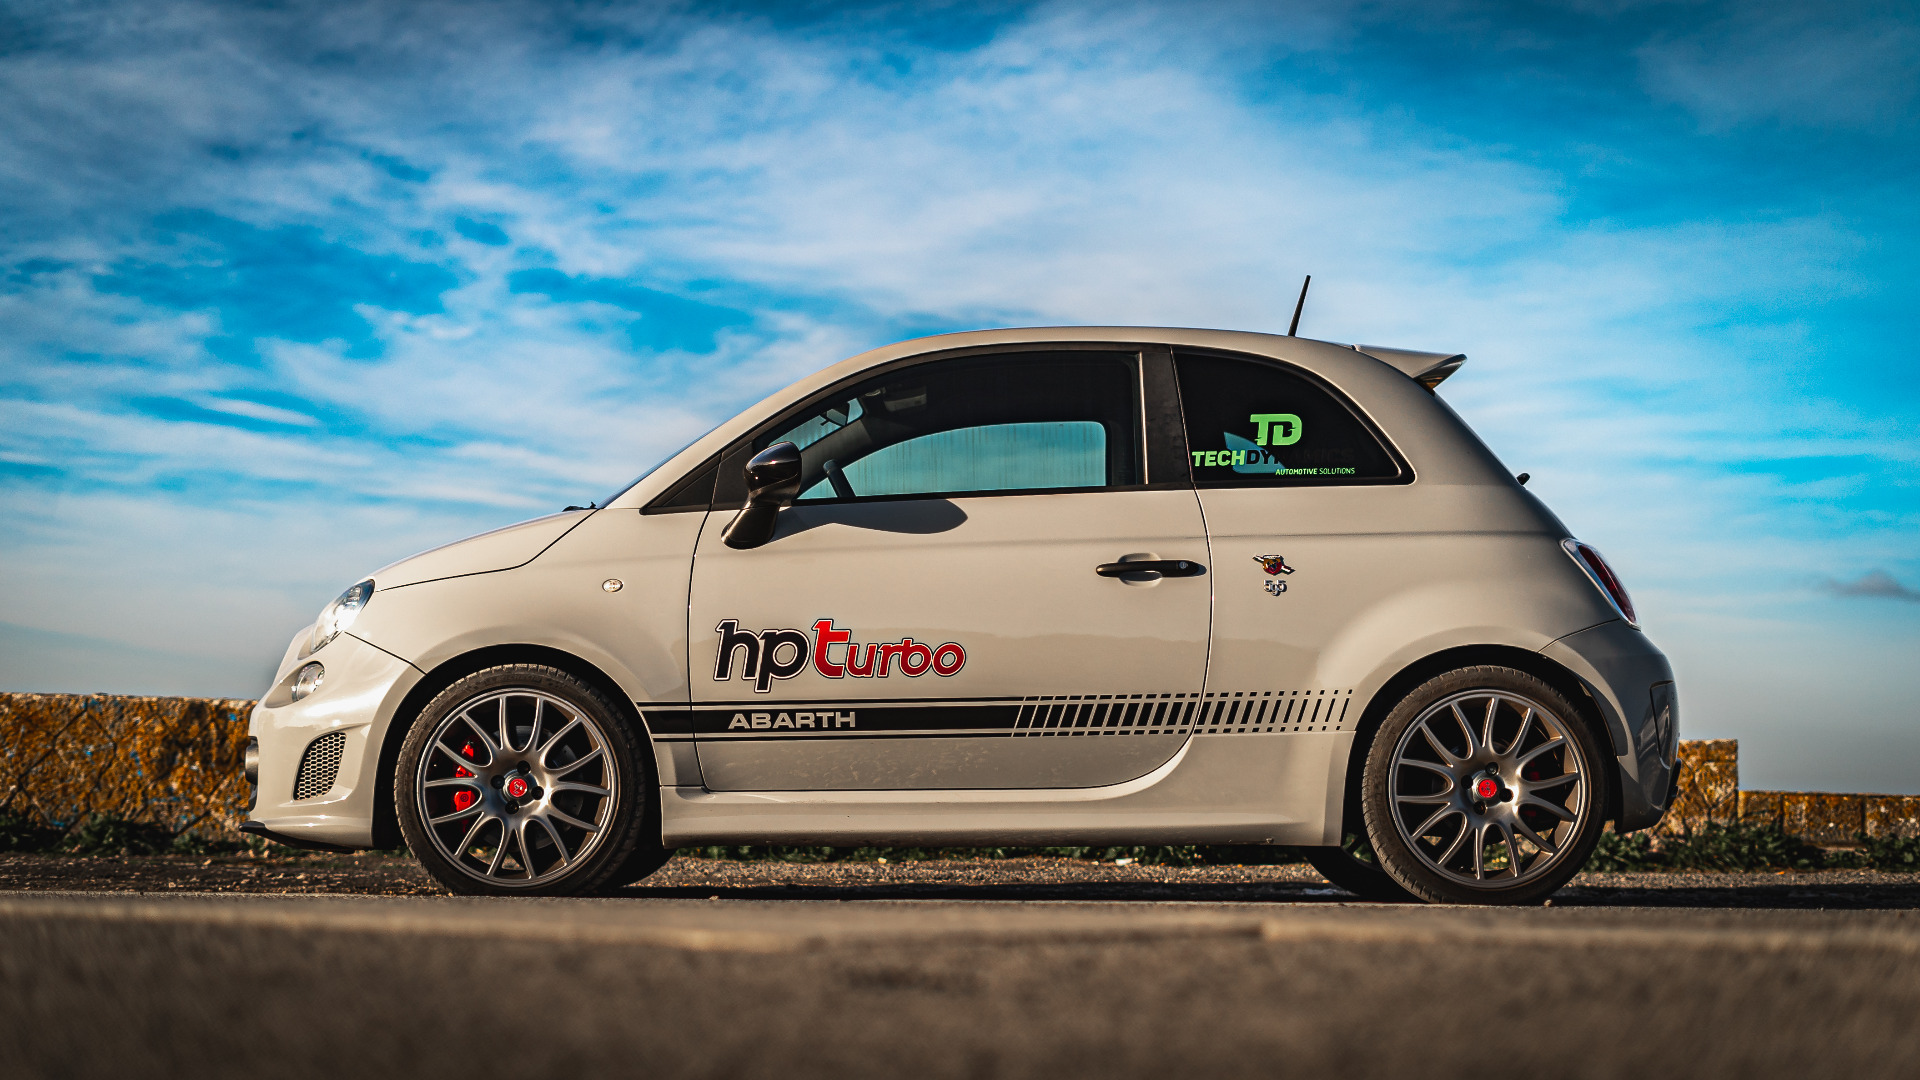 HPT #ARTICLE33 HPTurbo Abarth with CaronlineTv